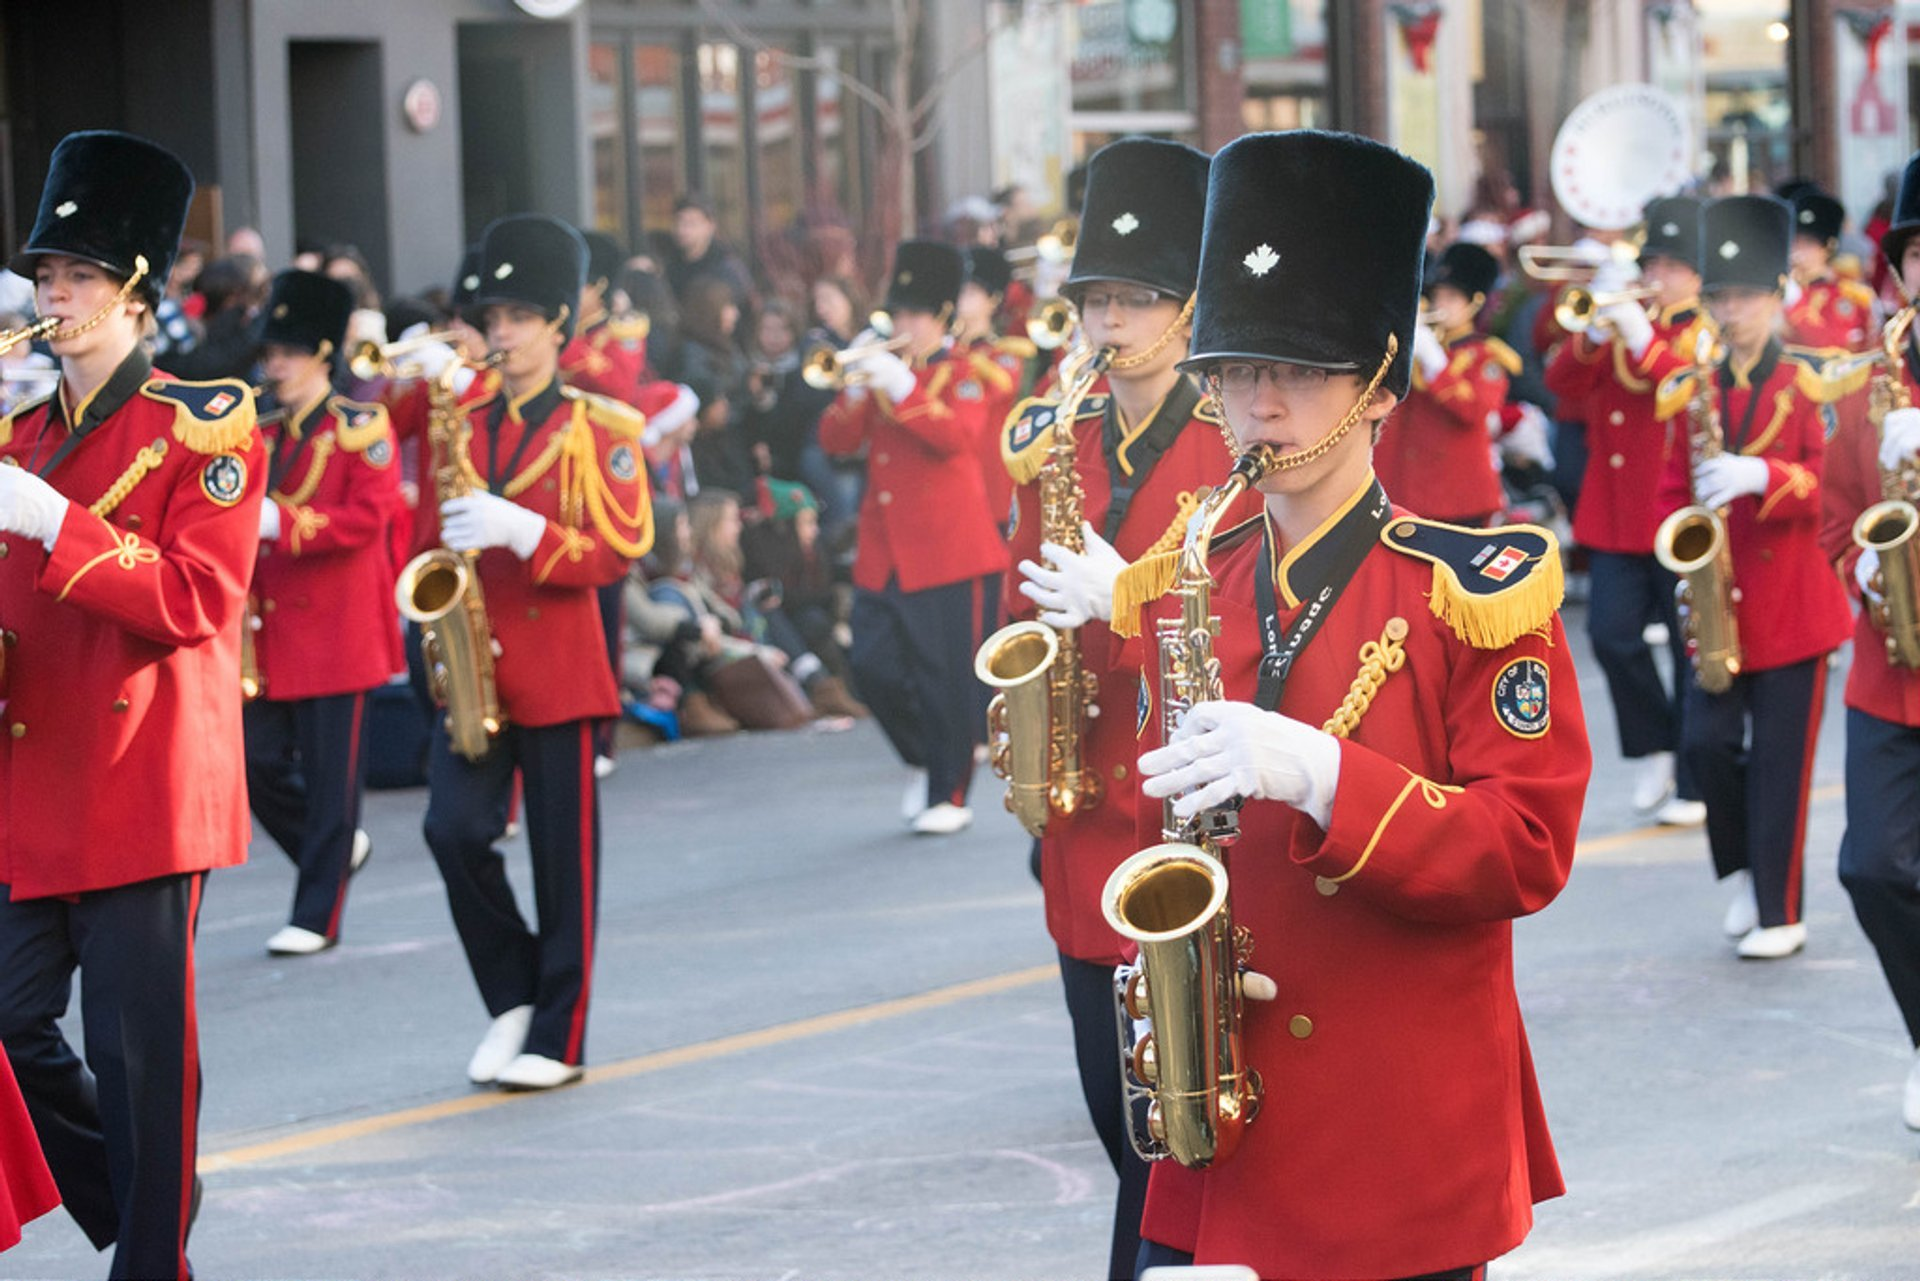 Best time to see Santa Claus Parade in Toronto